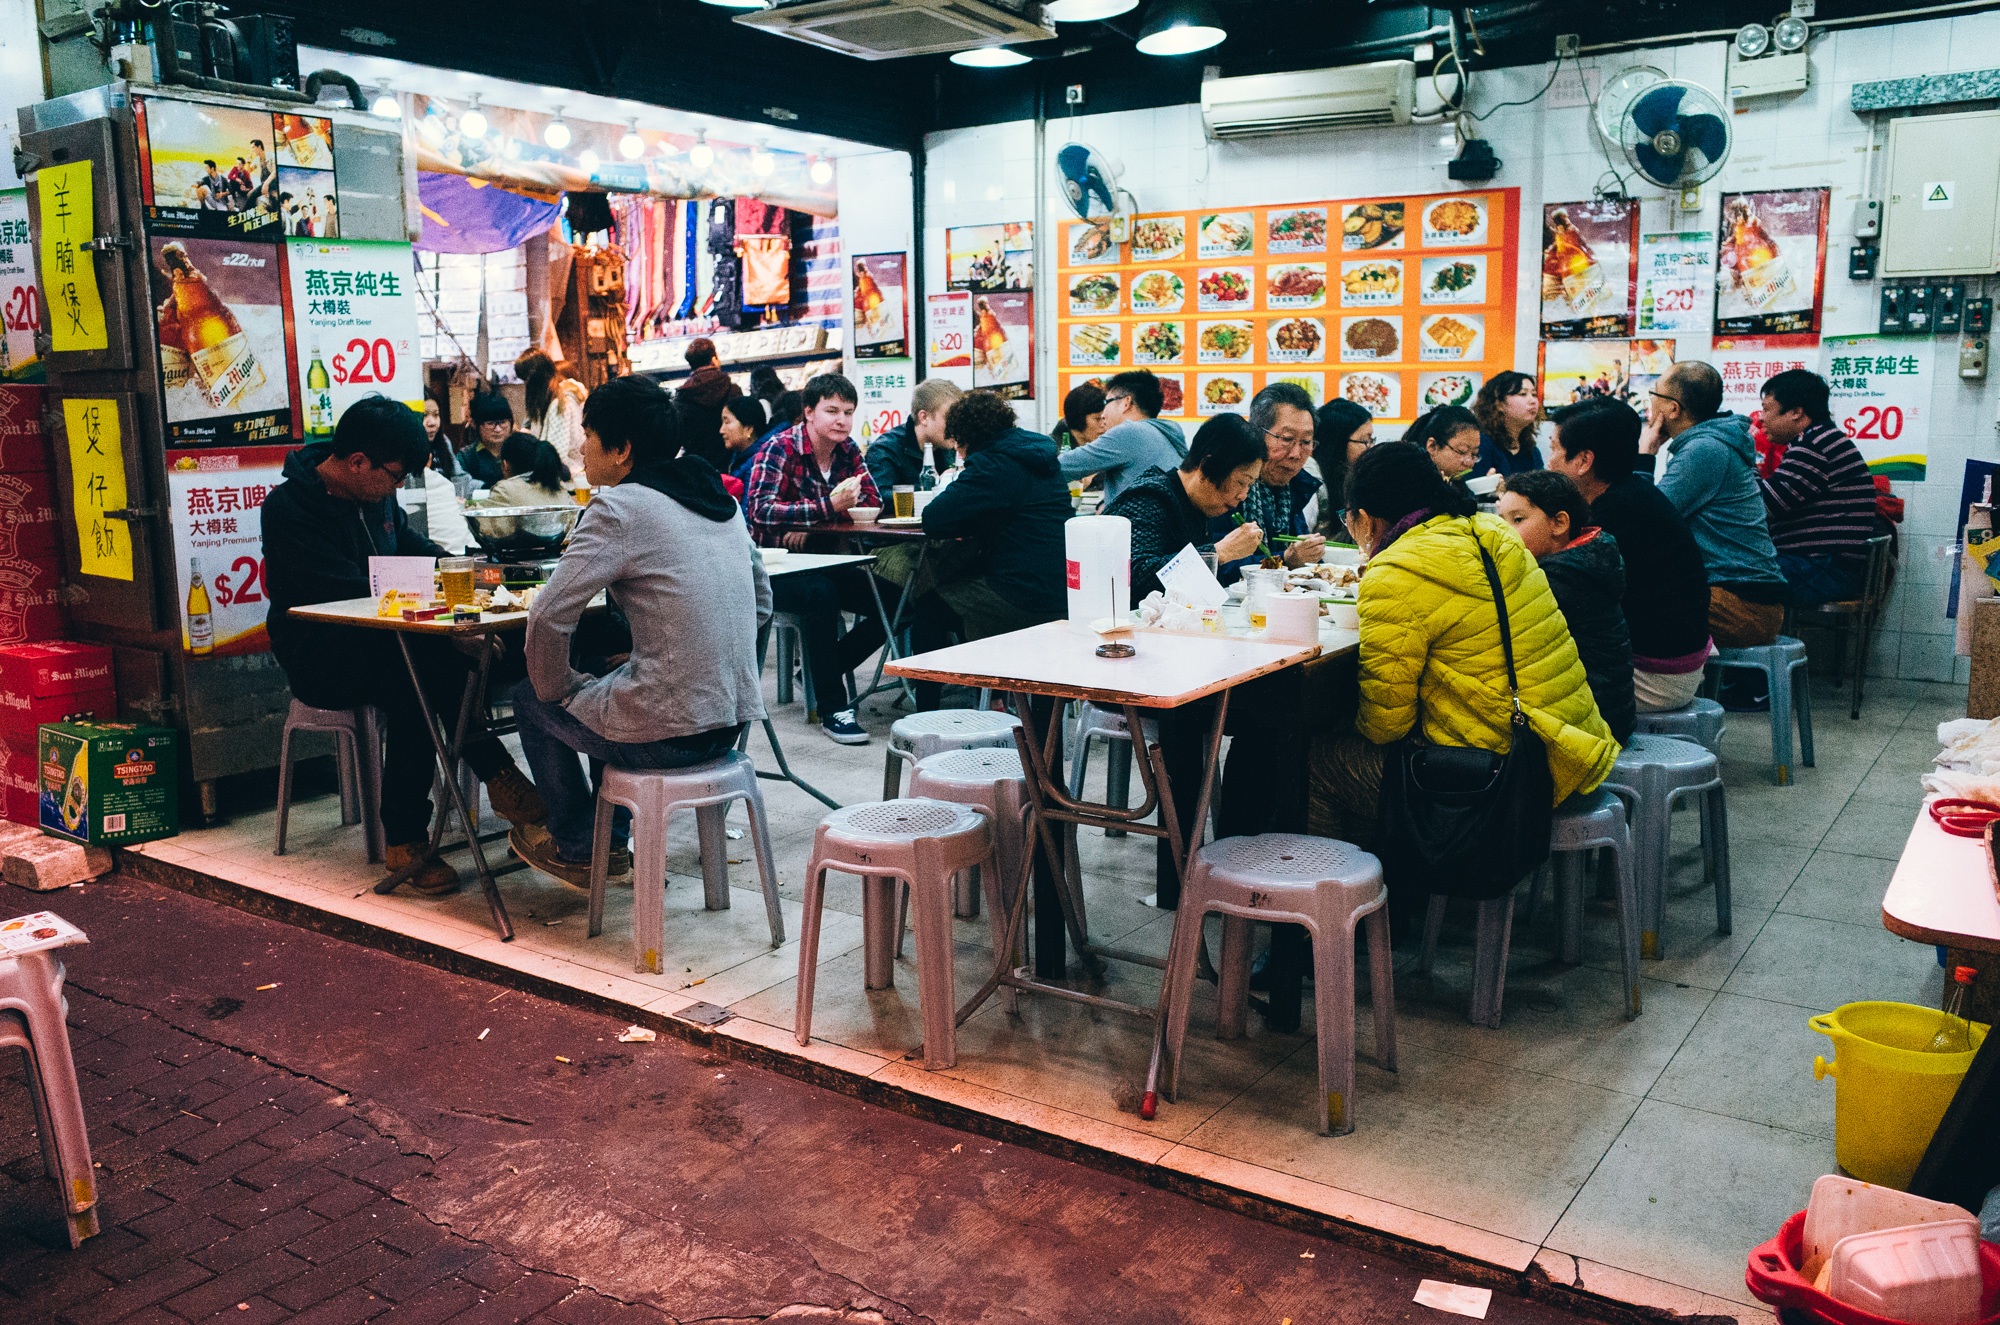 As aforementioned, Temple Street is home to a numerous locally-owned eateries with the typical Hong Kong menu.